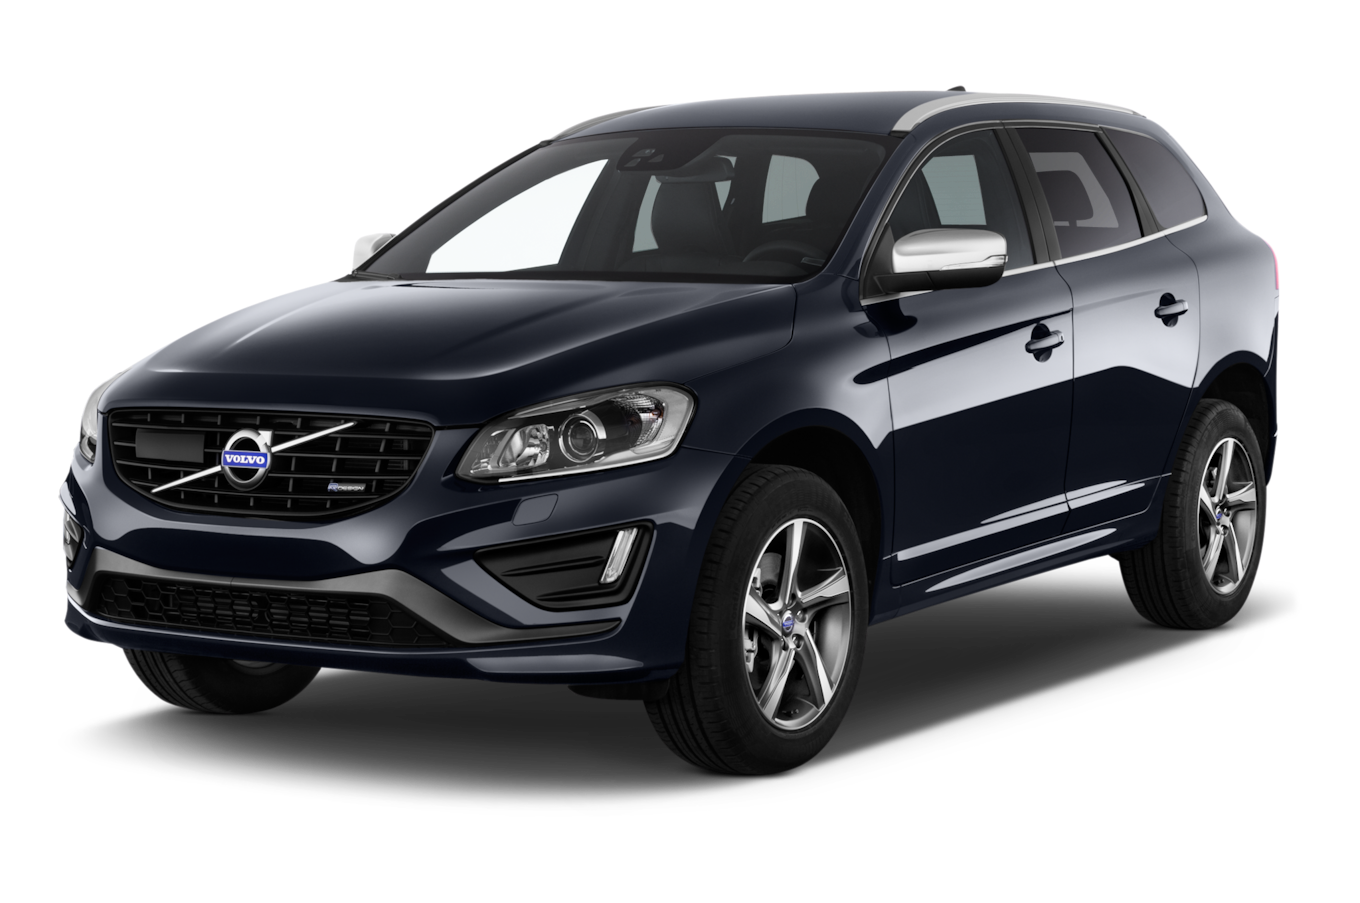 2016 Volvo XC60 Reviews and Rating  Motor Trend